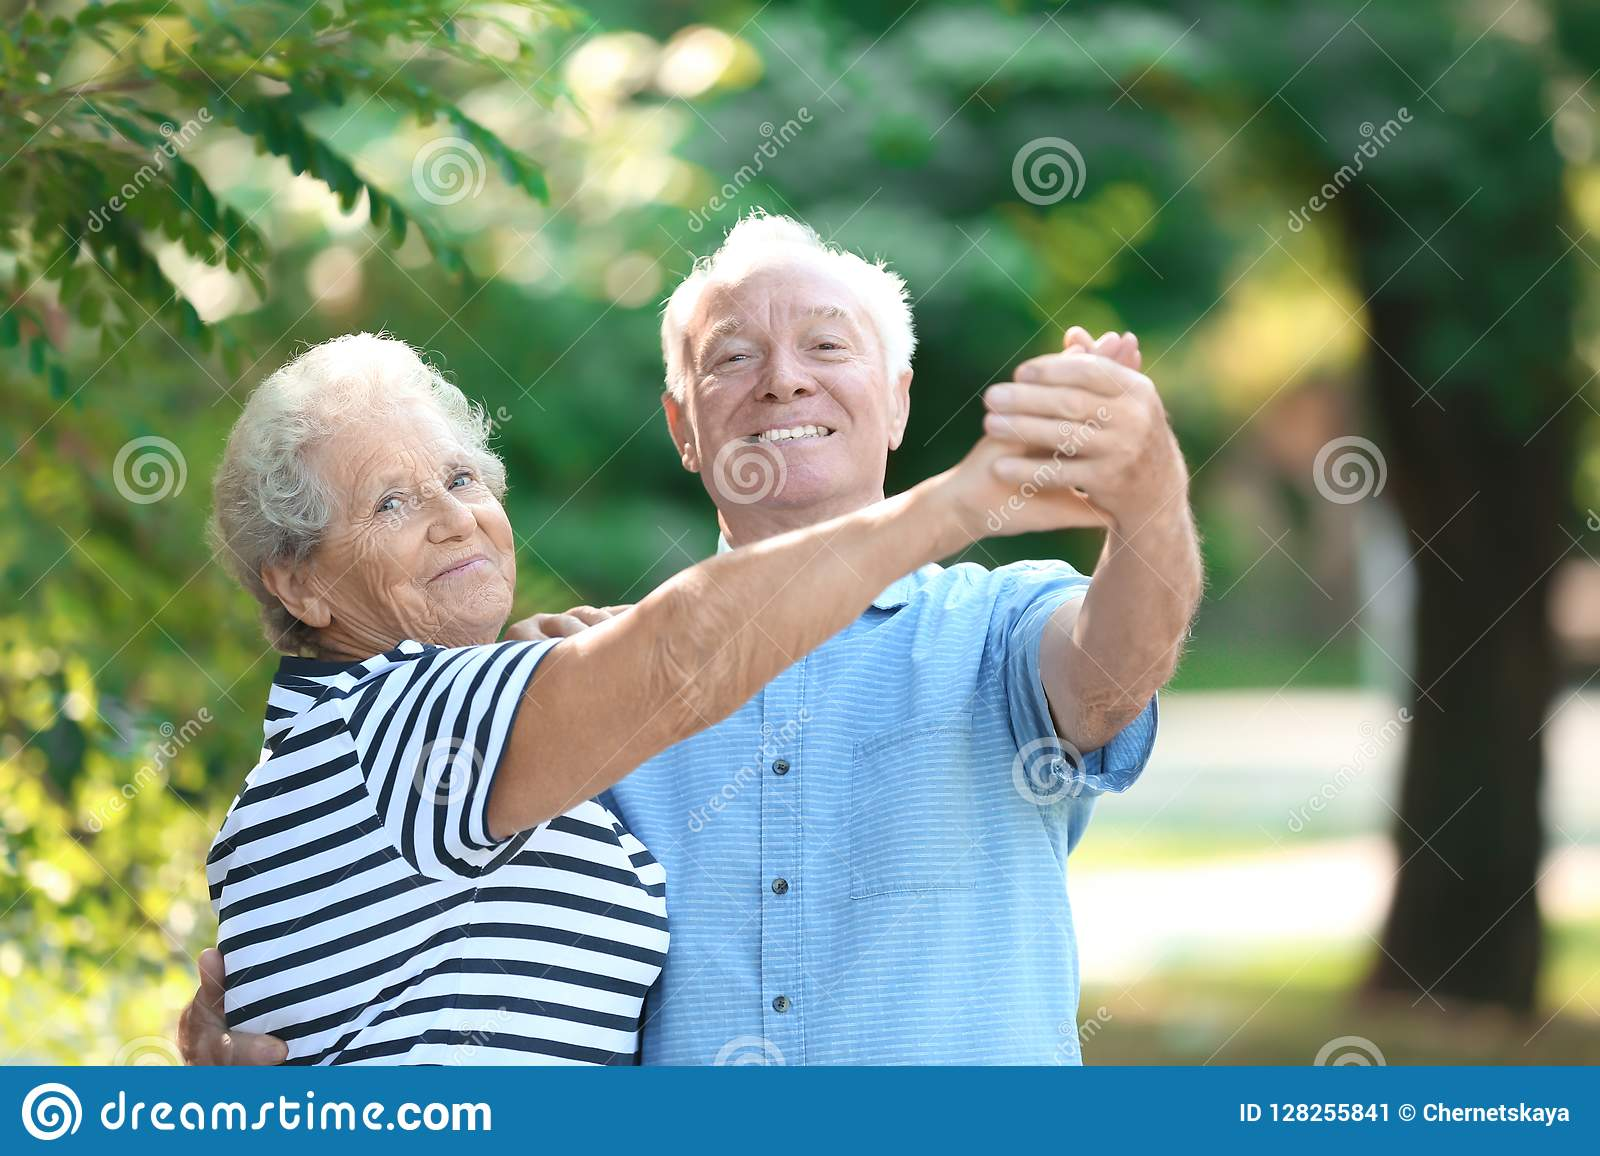 Cute elderly couple dancing outdoors.